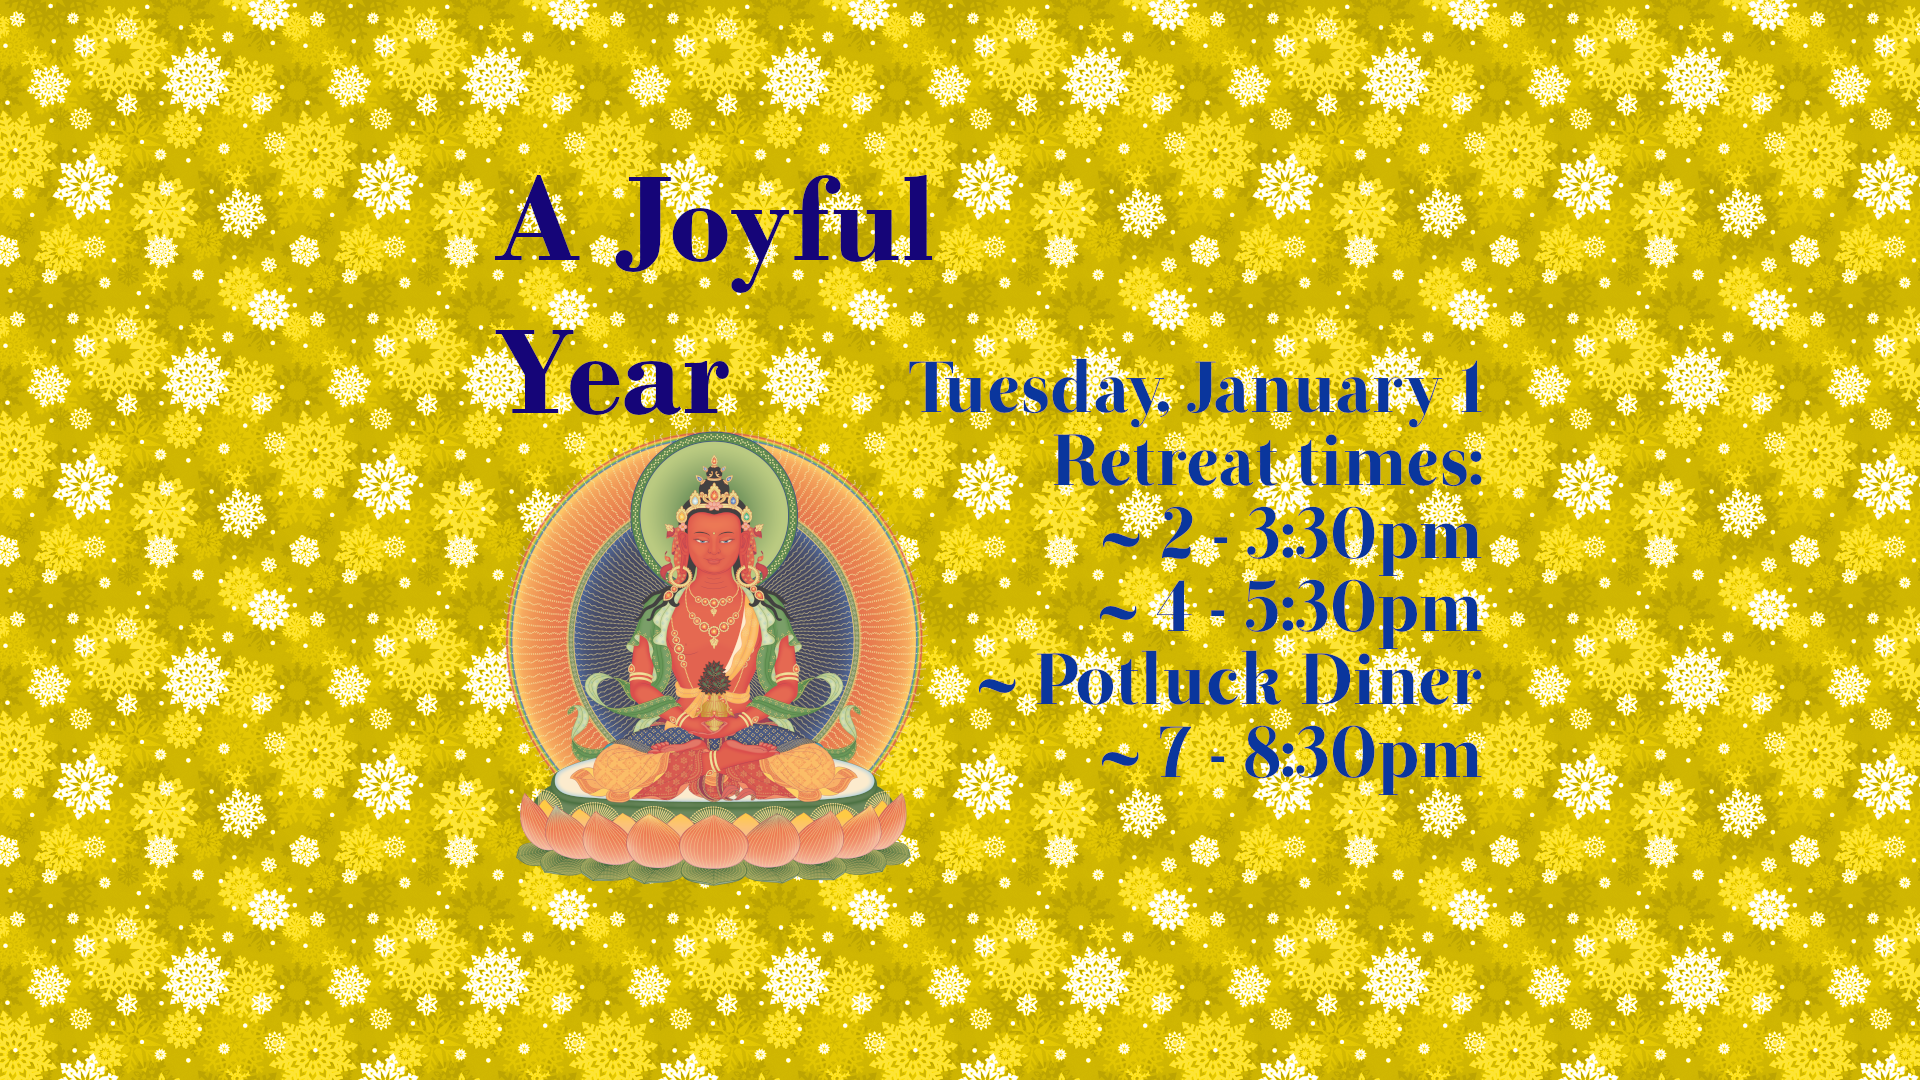 A Joyful Year: Amitayus Long Life, Merit and Wisdom Retreat